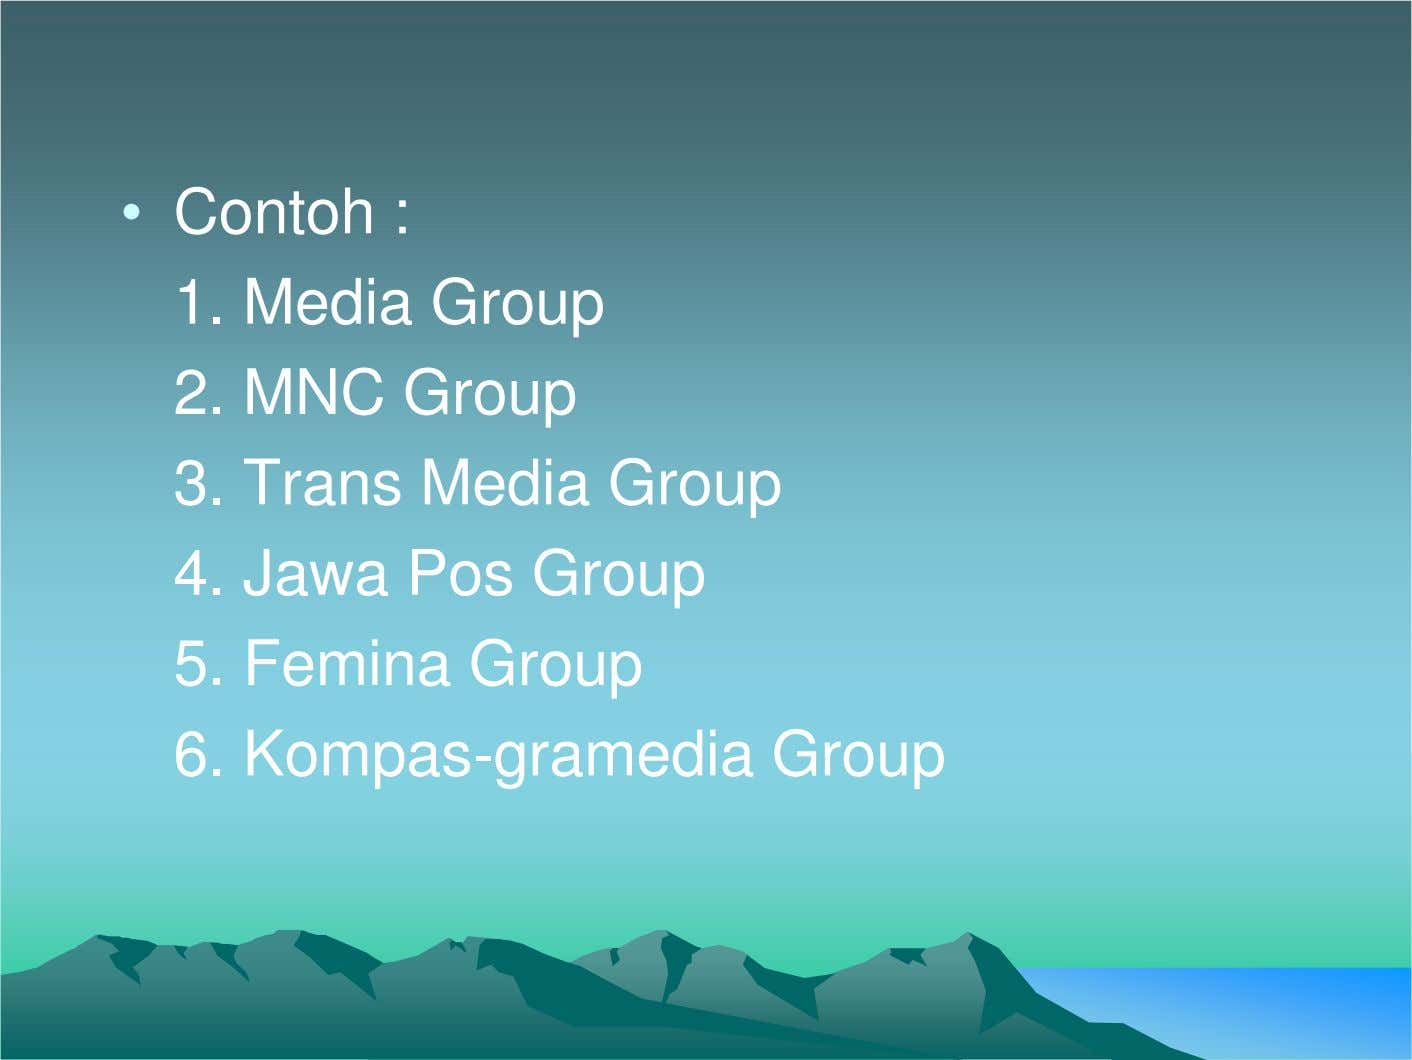 • Contoh : 1. Media Group 2. MNC Group 3. Trans Media Group 4. Jawa